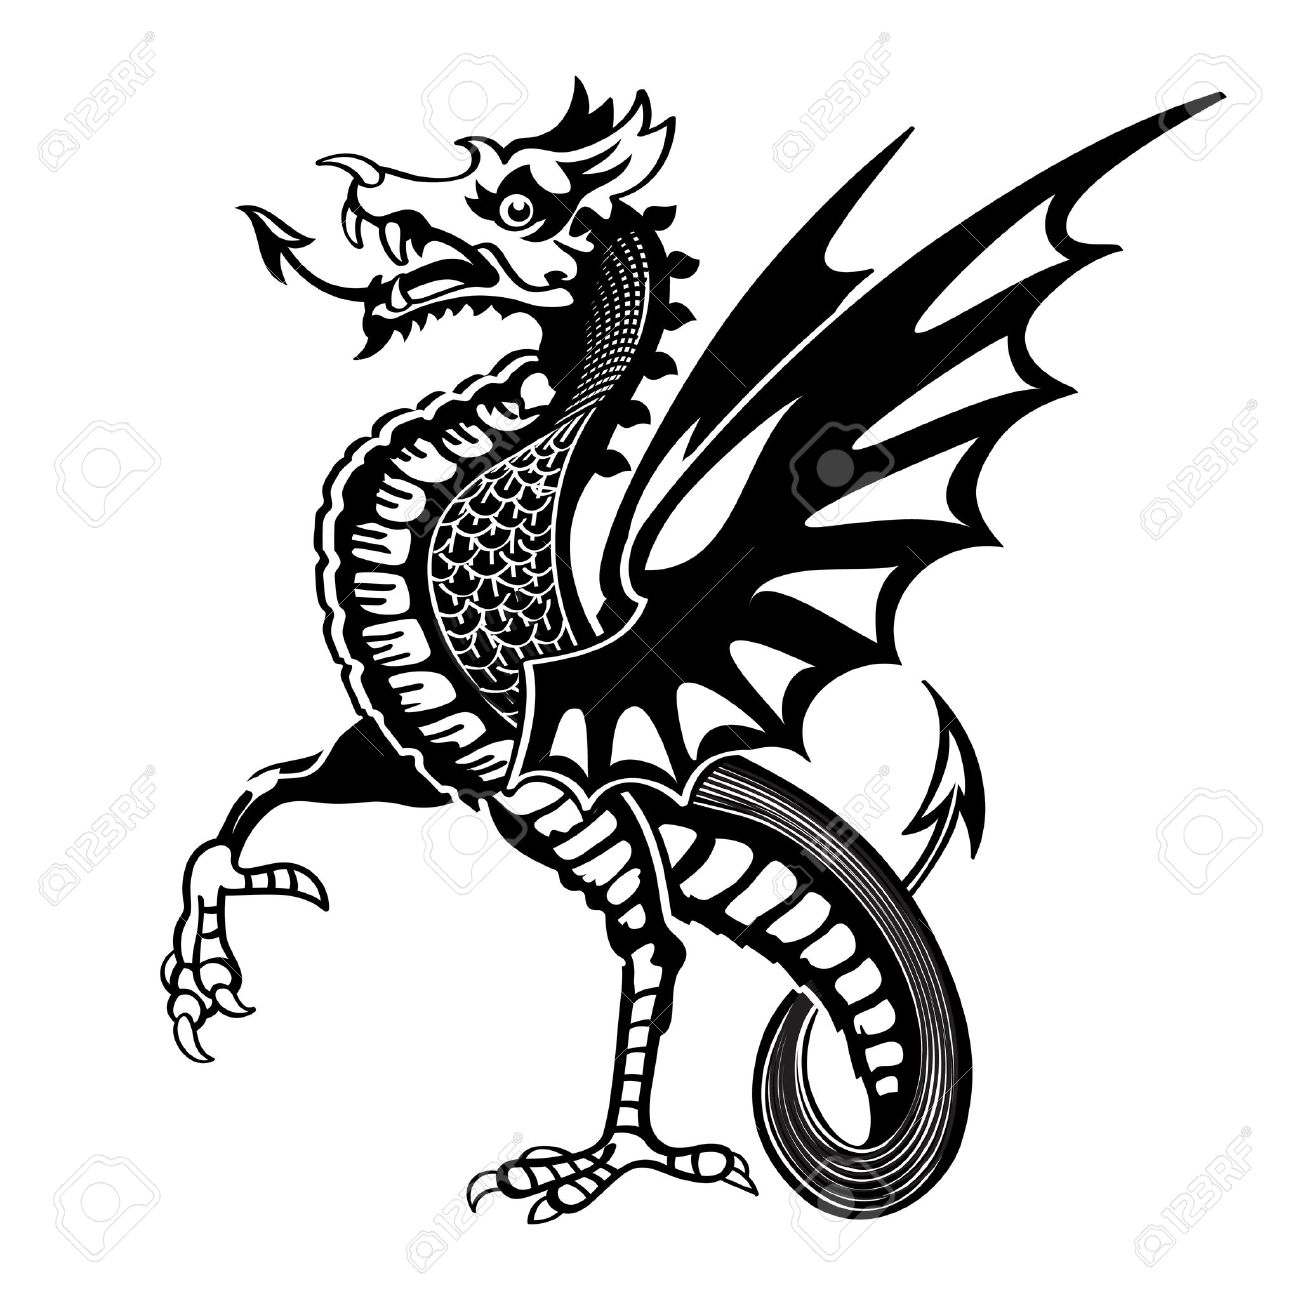 1300x1300 Vintage Medieval Dragon Drawing Royalty Free Cliparts, Vectors